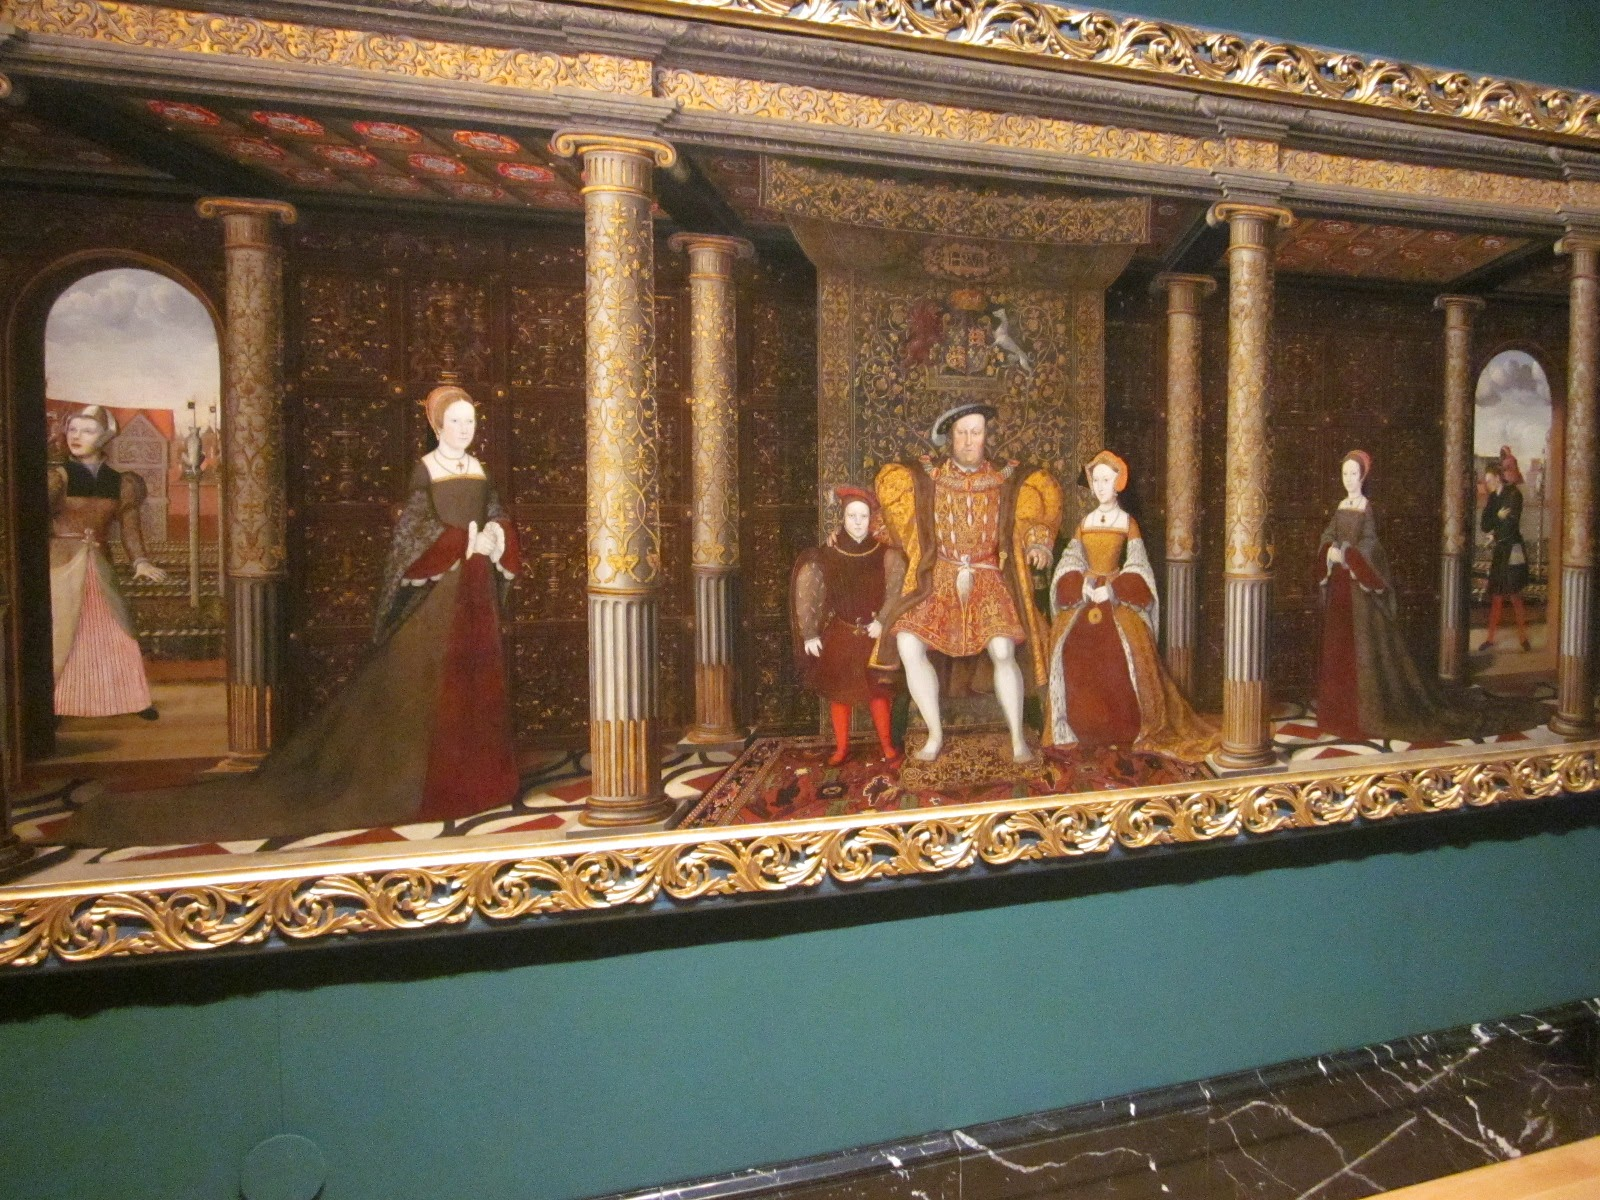 A view of the Henry VIII and family portrait on show at the Painting Paradise exhibition